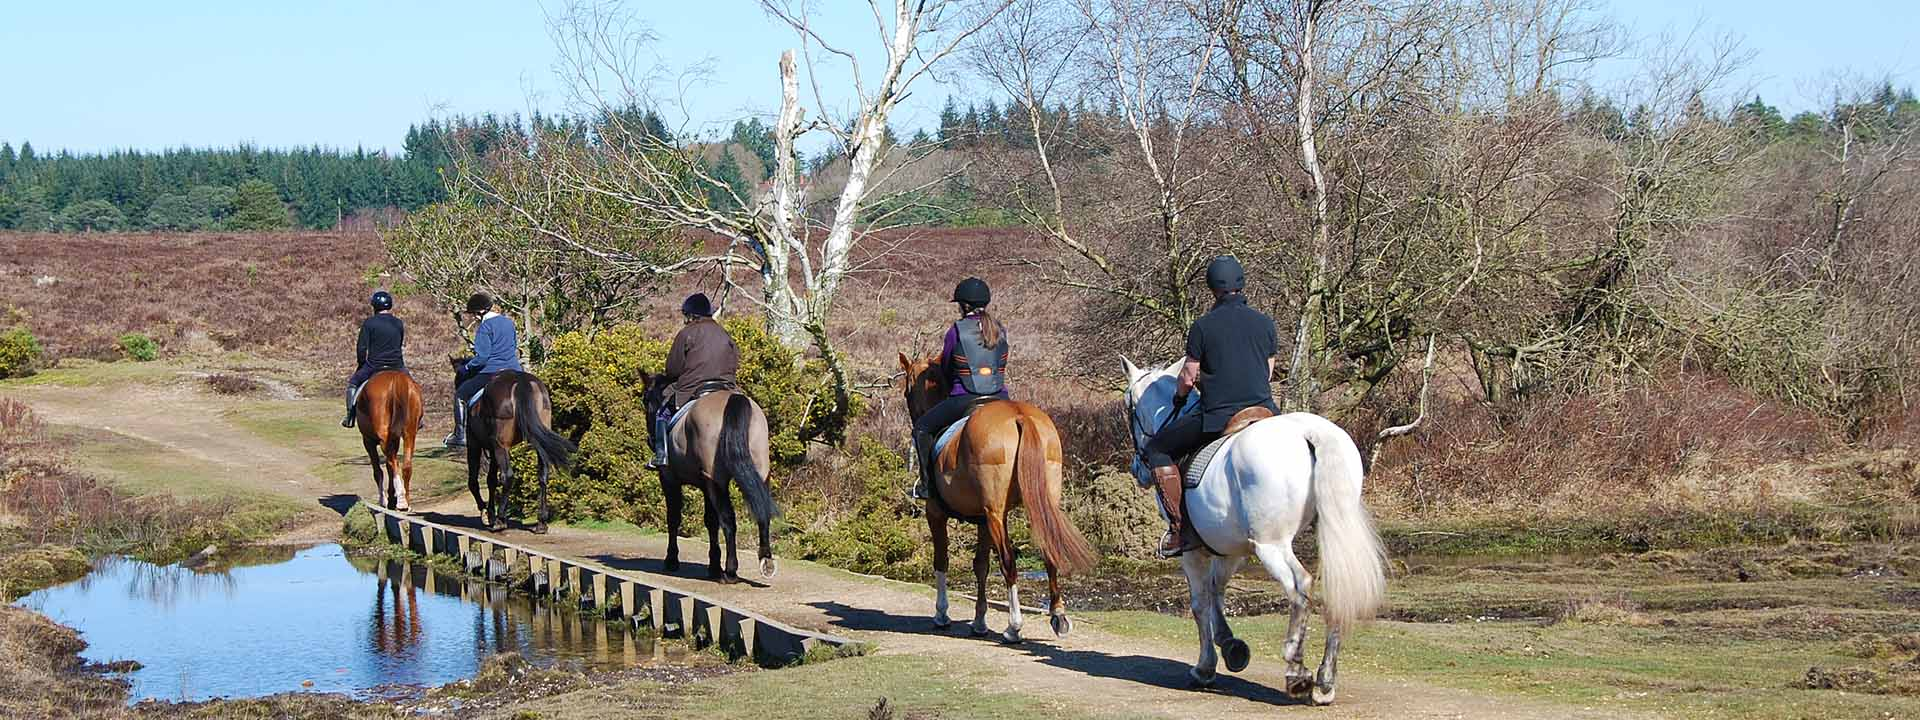 Horse Riding New Forest National Park Authority